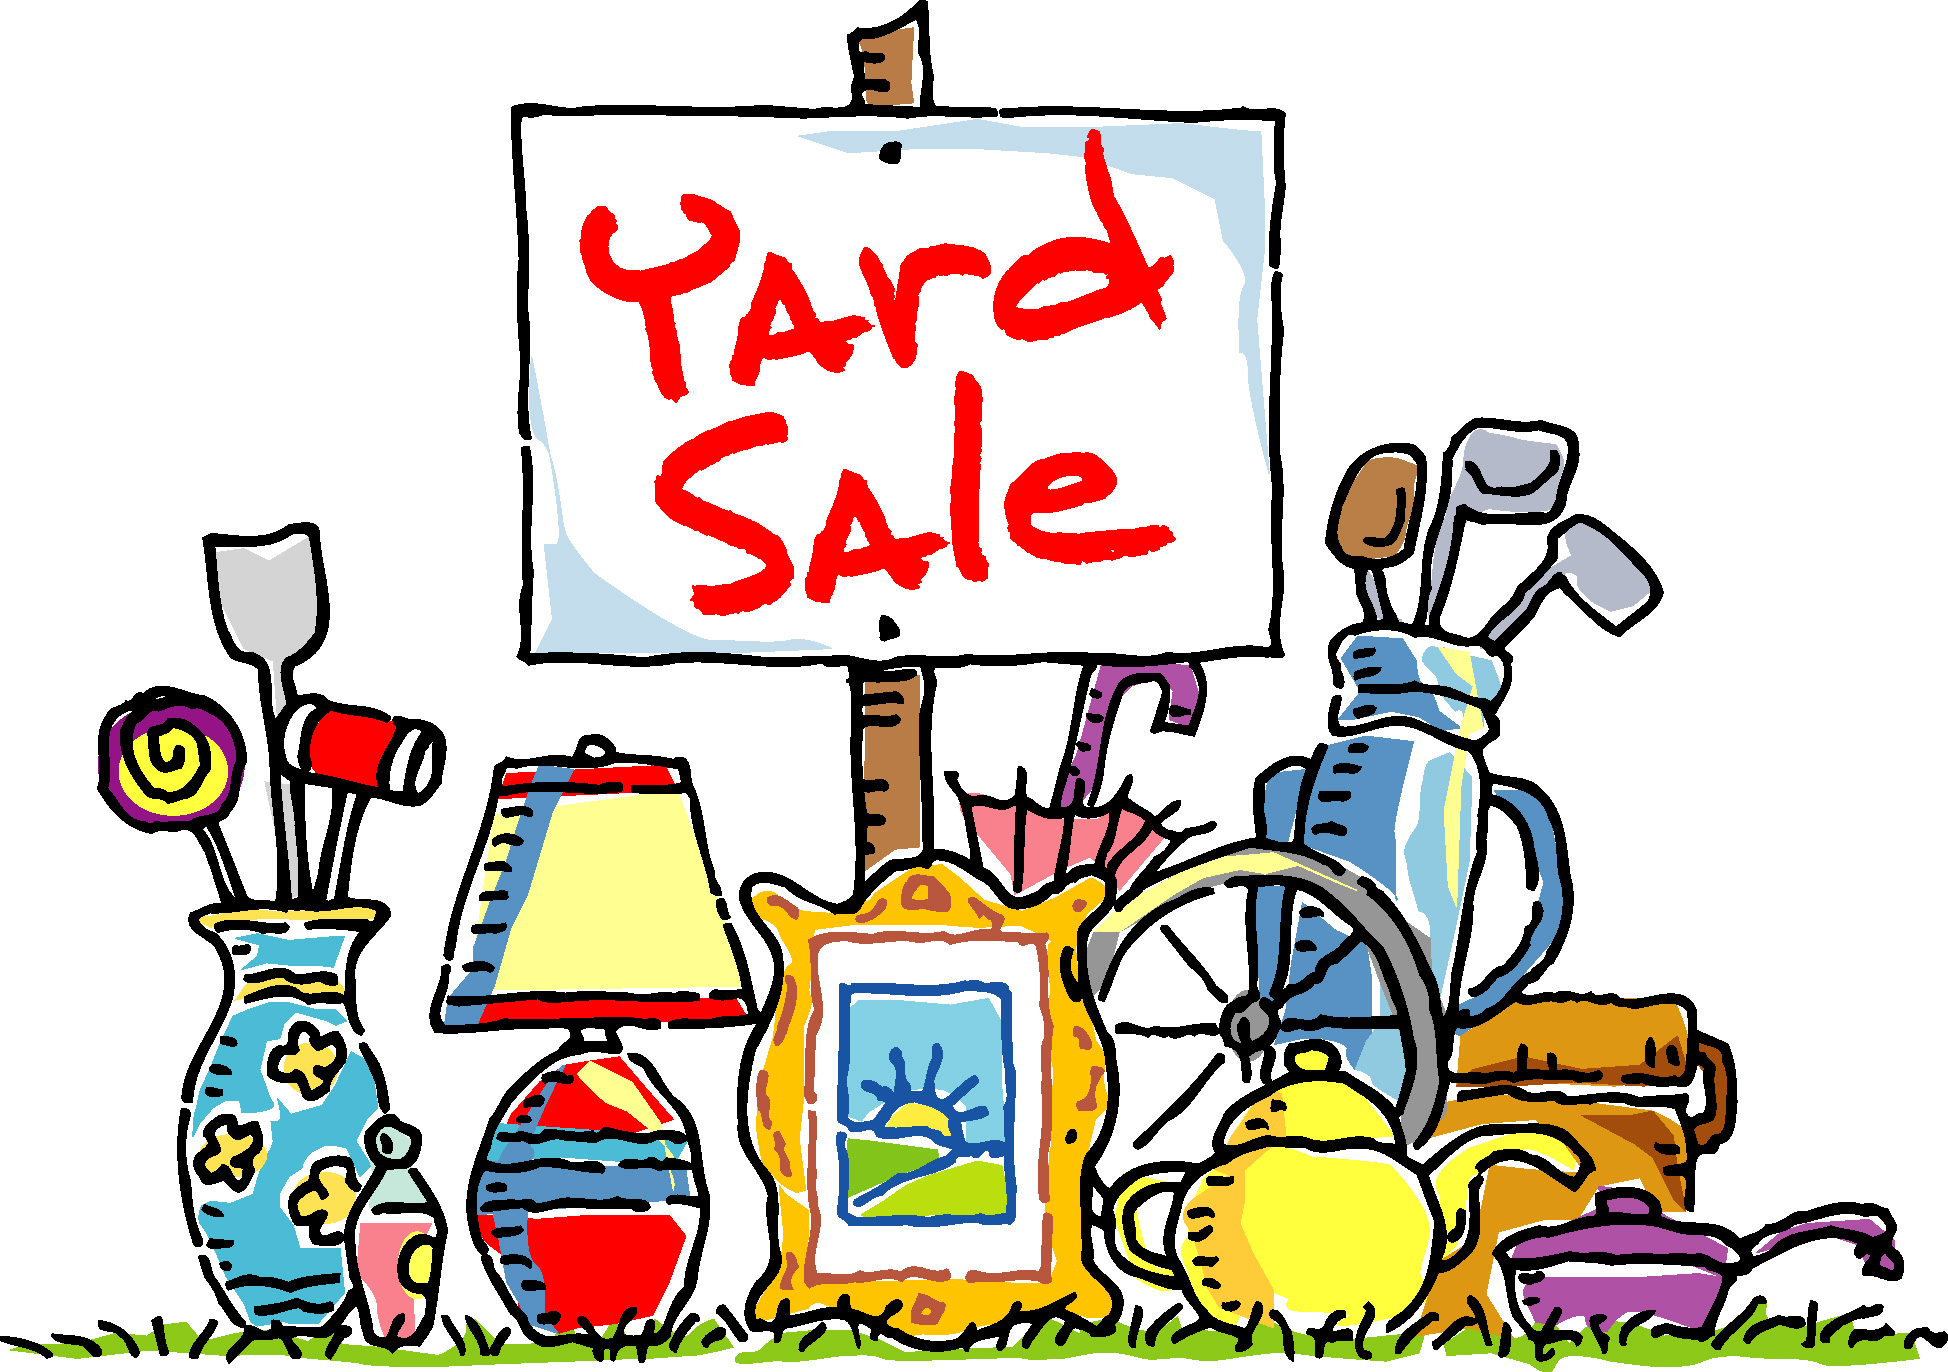 Yard Sale Fundraiser for Food Pantry Bunker Hill Lutheran